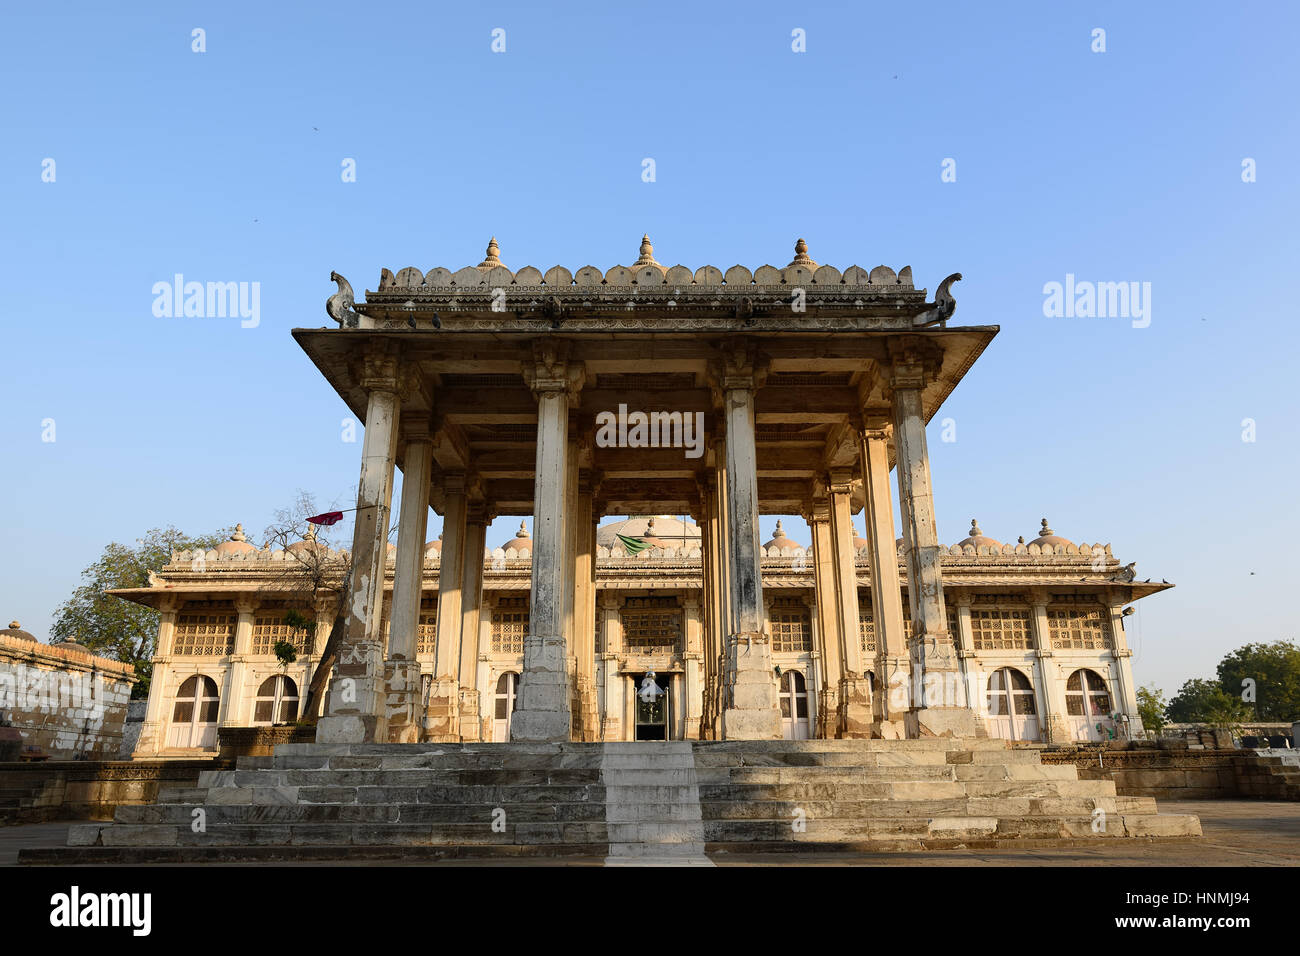 Sarkhej Roza is a located in the village of Makaraba, near  Ahmedabad in Gujarat state, India. The picture presents - Stock Image